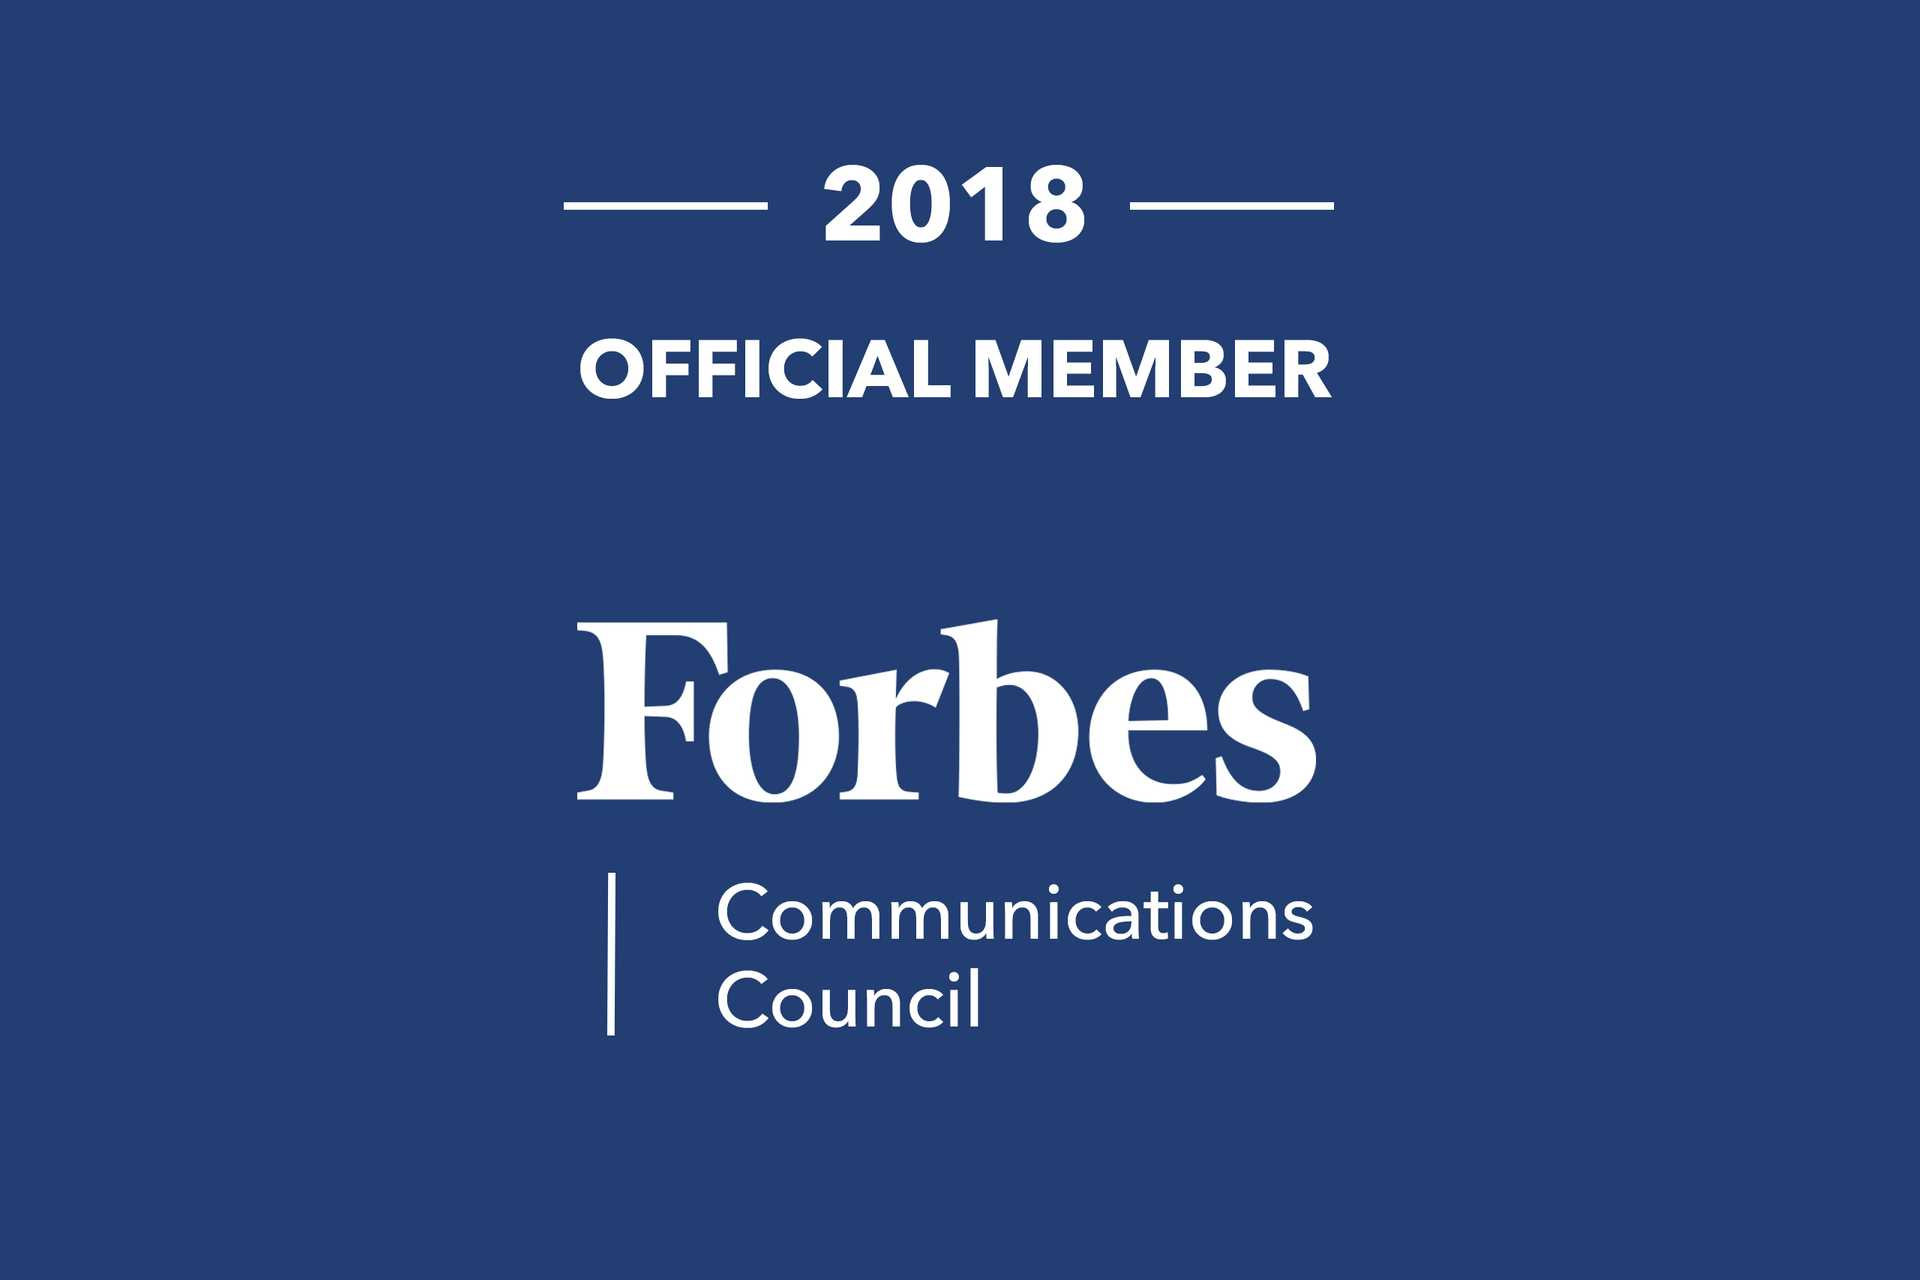 2018 Official Member Forbes Communications Council on blue